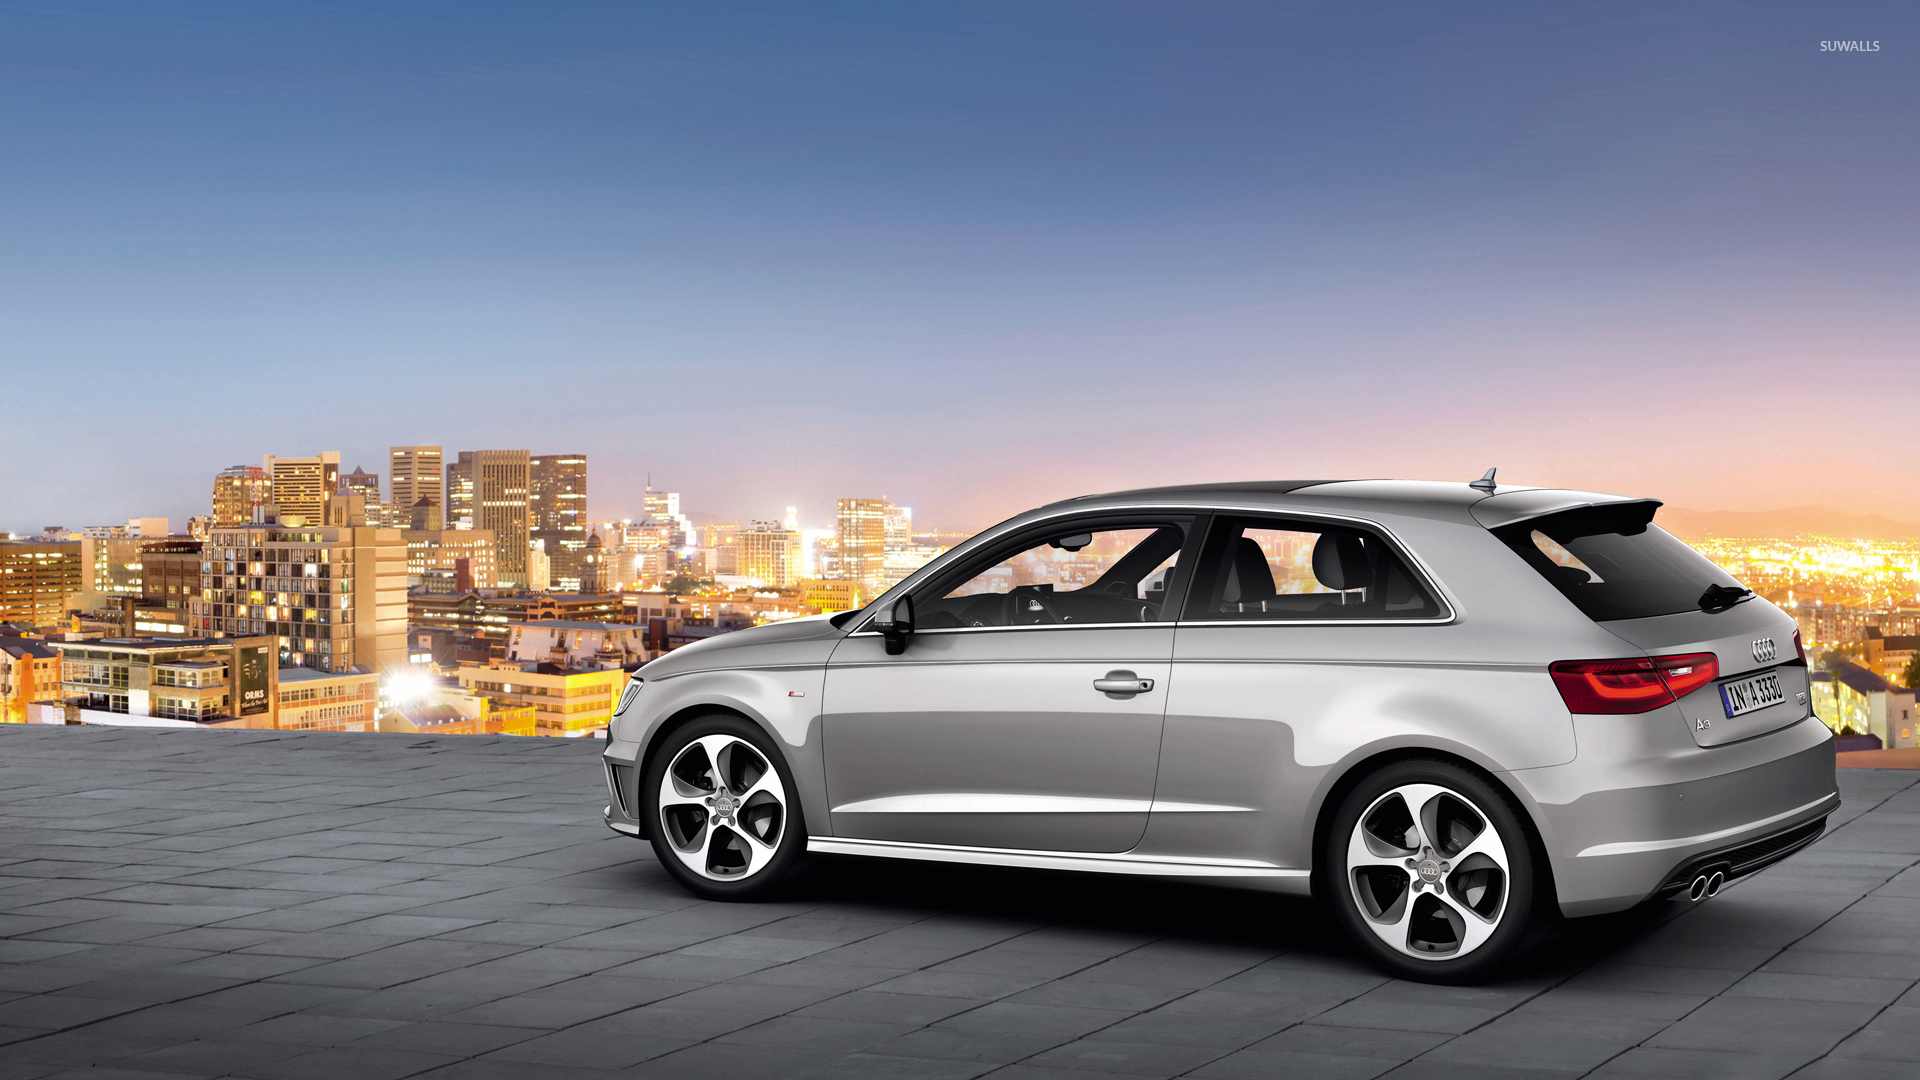 2013 silver audi a3 hatchback wallpaper car wallpapers. Black Bedroom Furniture Sets. Home Design Ideas